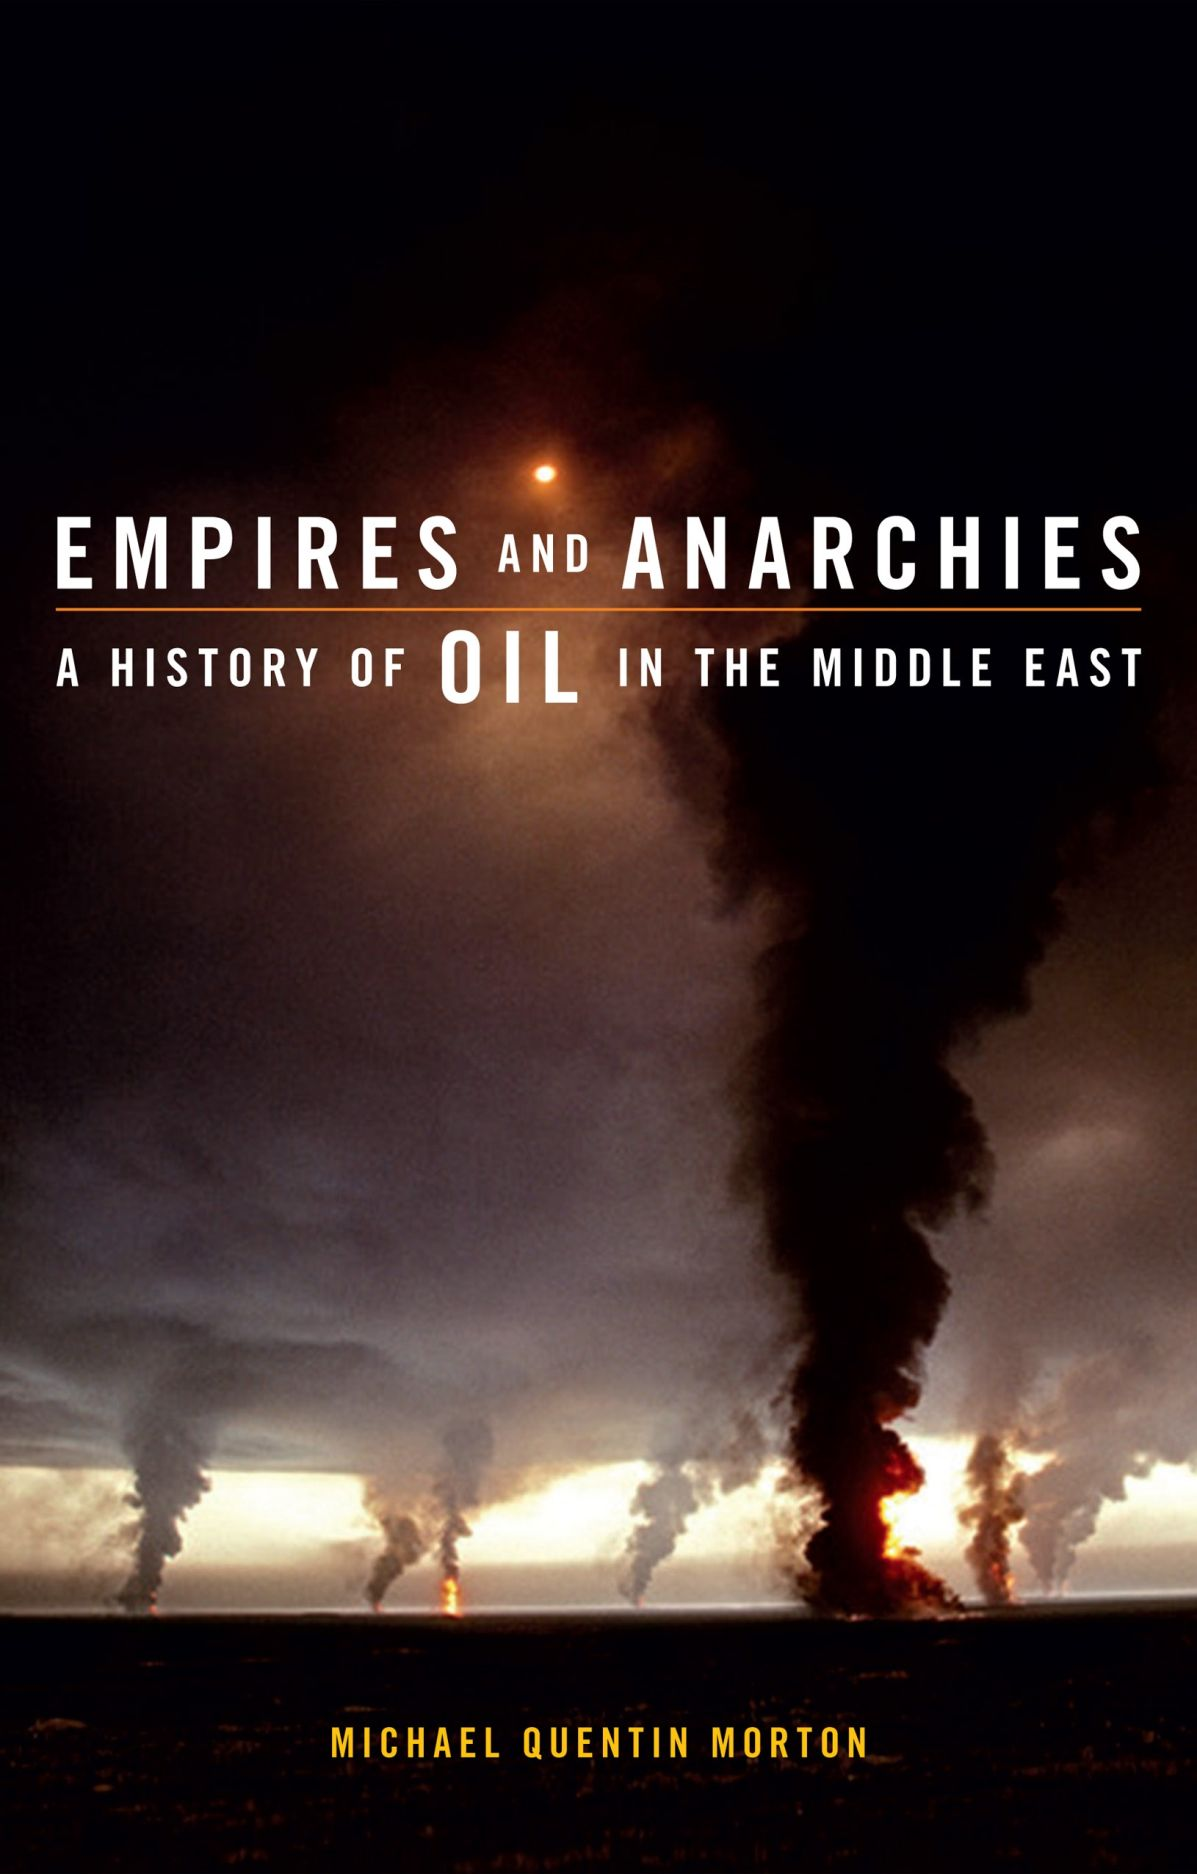 Empires and Anarchies: A History of Oil in the Middle East